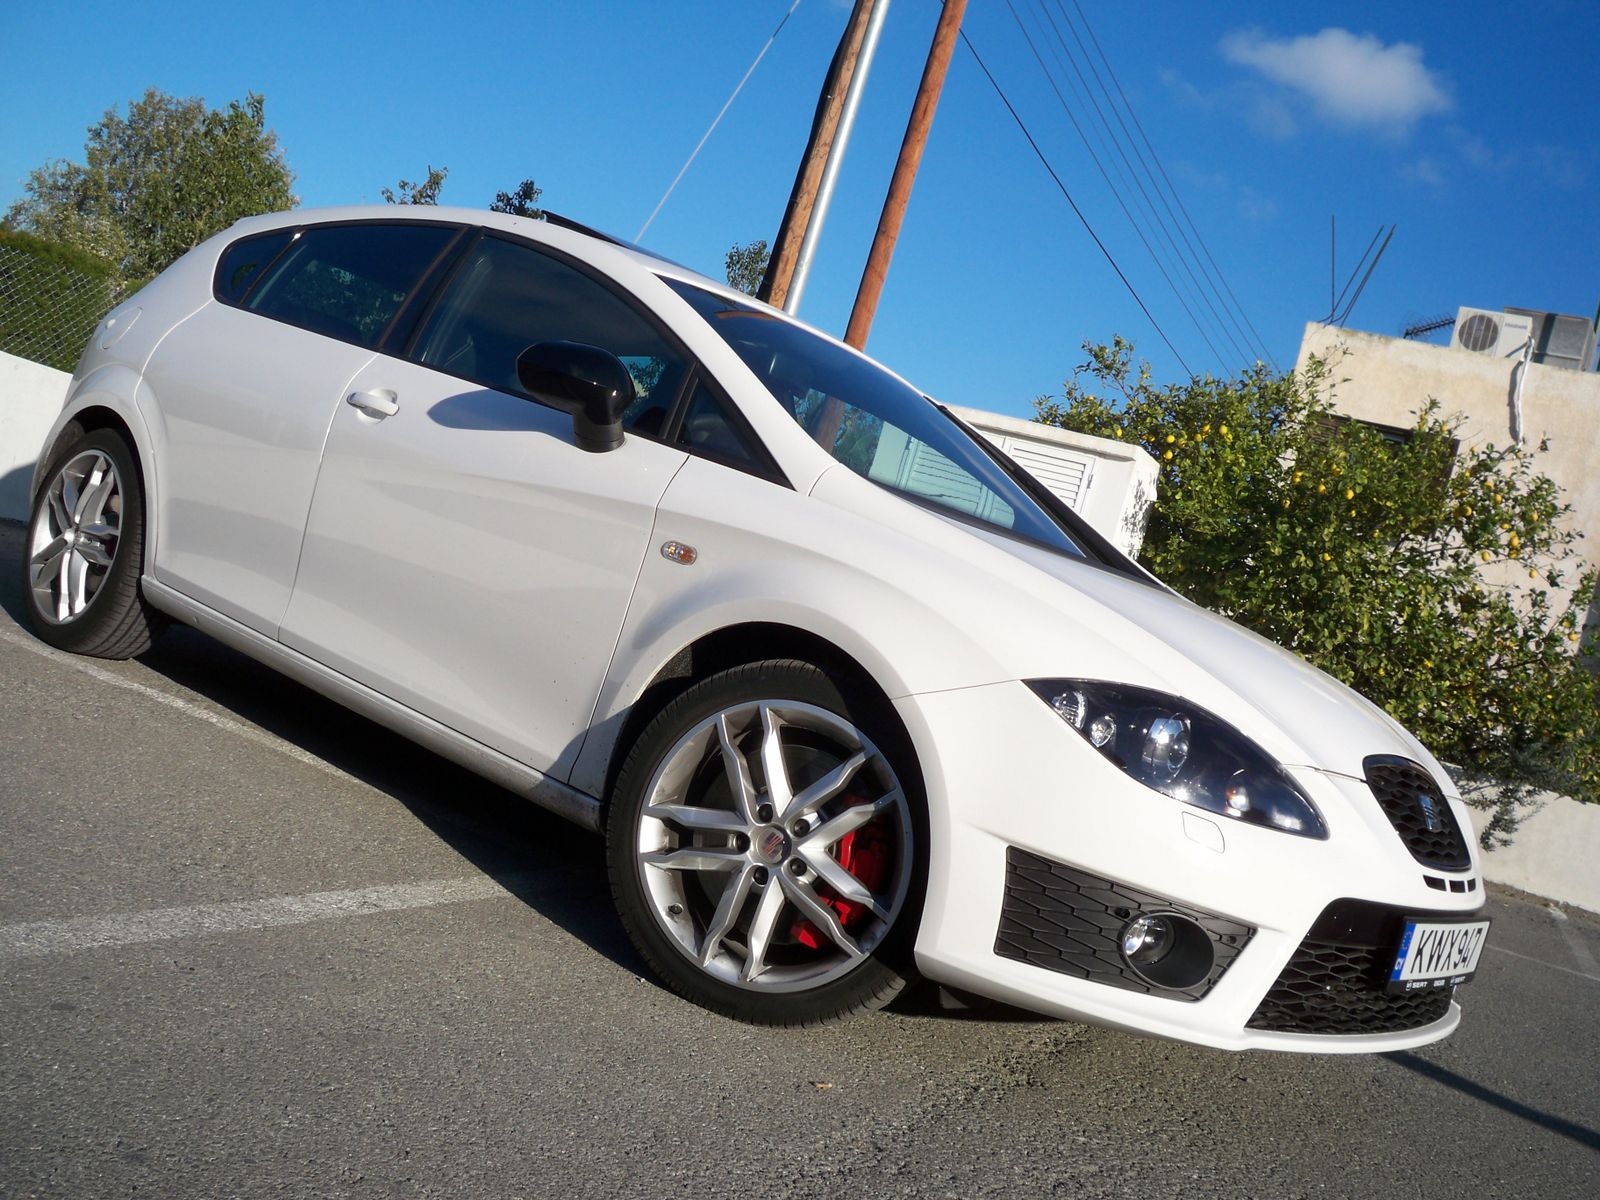 seat leon cupra mk2 1p facelift 2009 cyprus seat leon cupra facelift 2009 2010 images. Black Bedroom Furniture Sets. Home Design Ideas